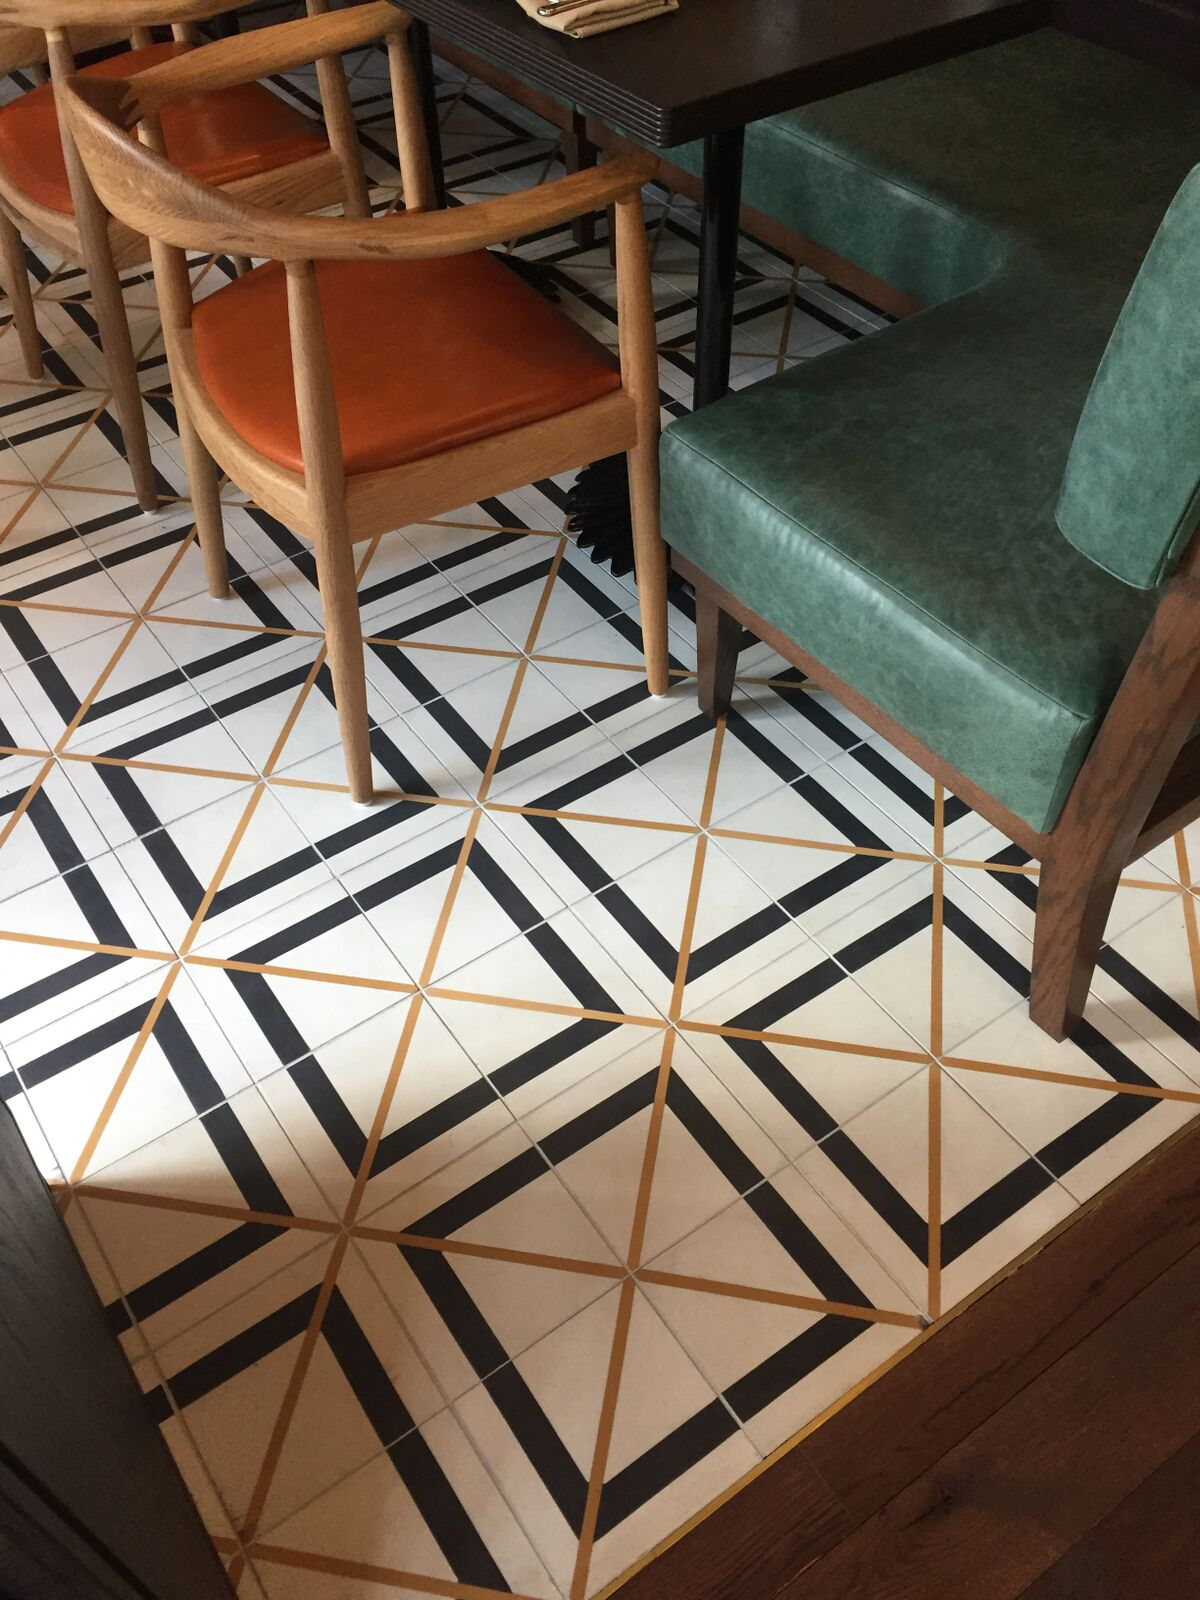 Brixton encaustic cement tile at the Hoxton Hotel in Portland